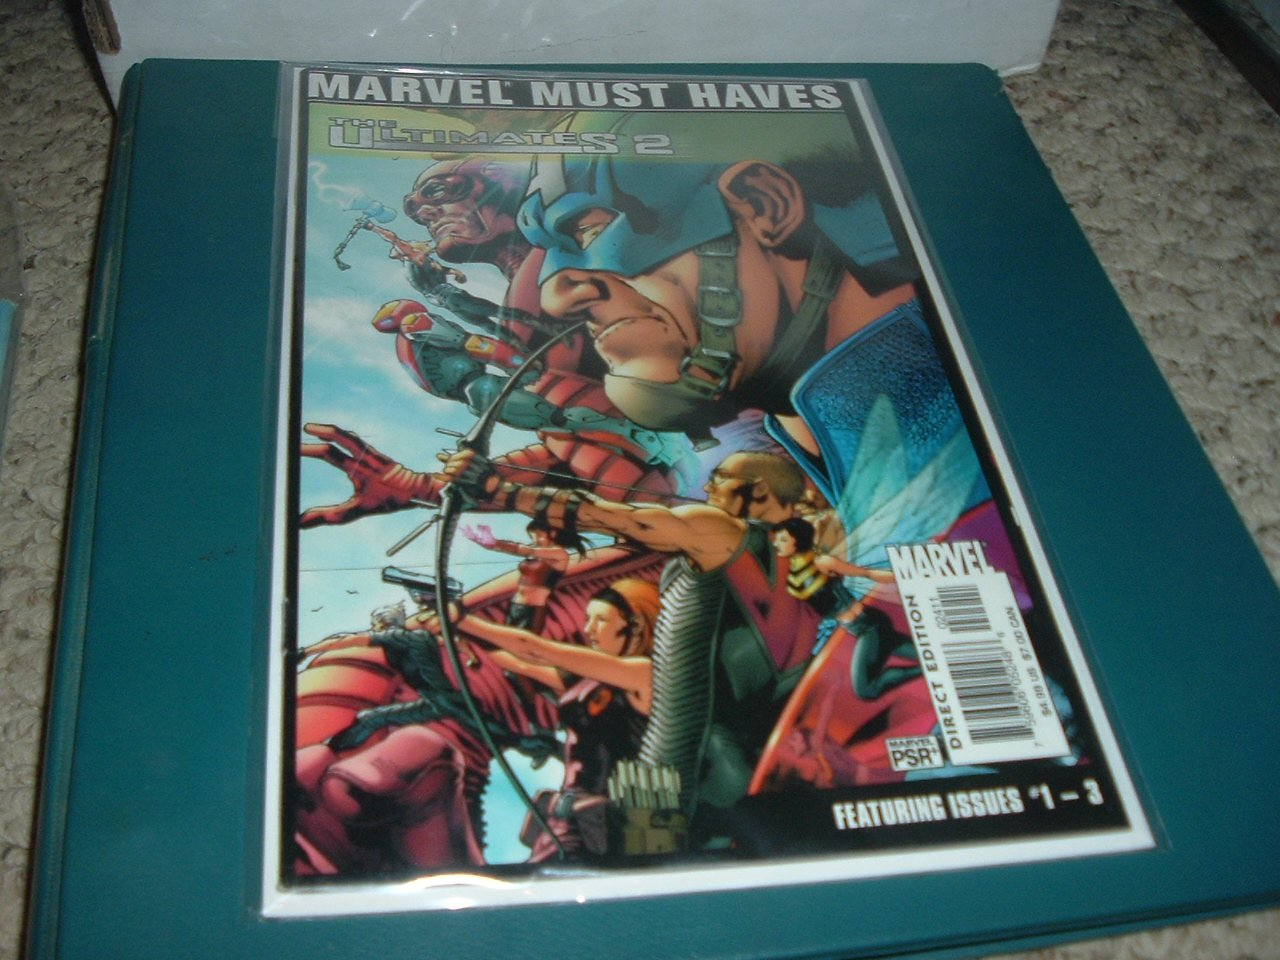 The Ultimates 2 #1-3 Collected TPB (Marvel Comics 2005) Millar, Marvel Must Haves edition, for sale